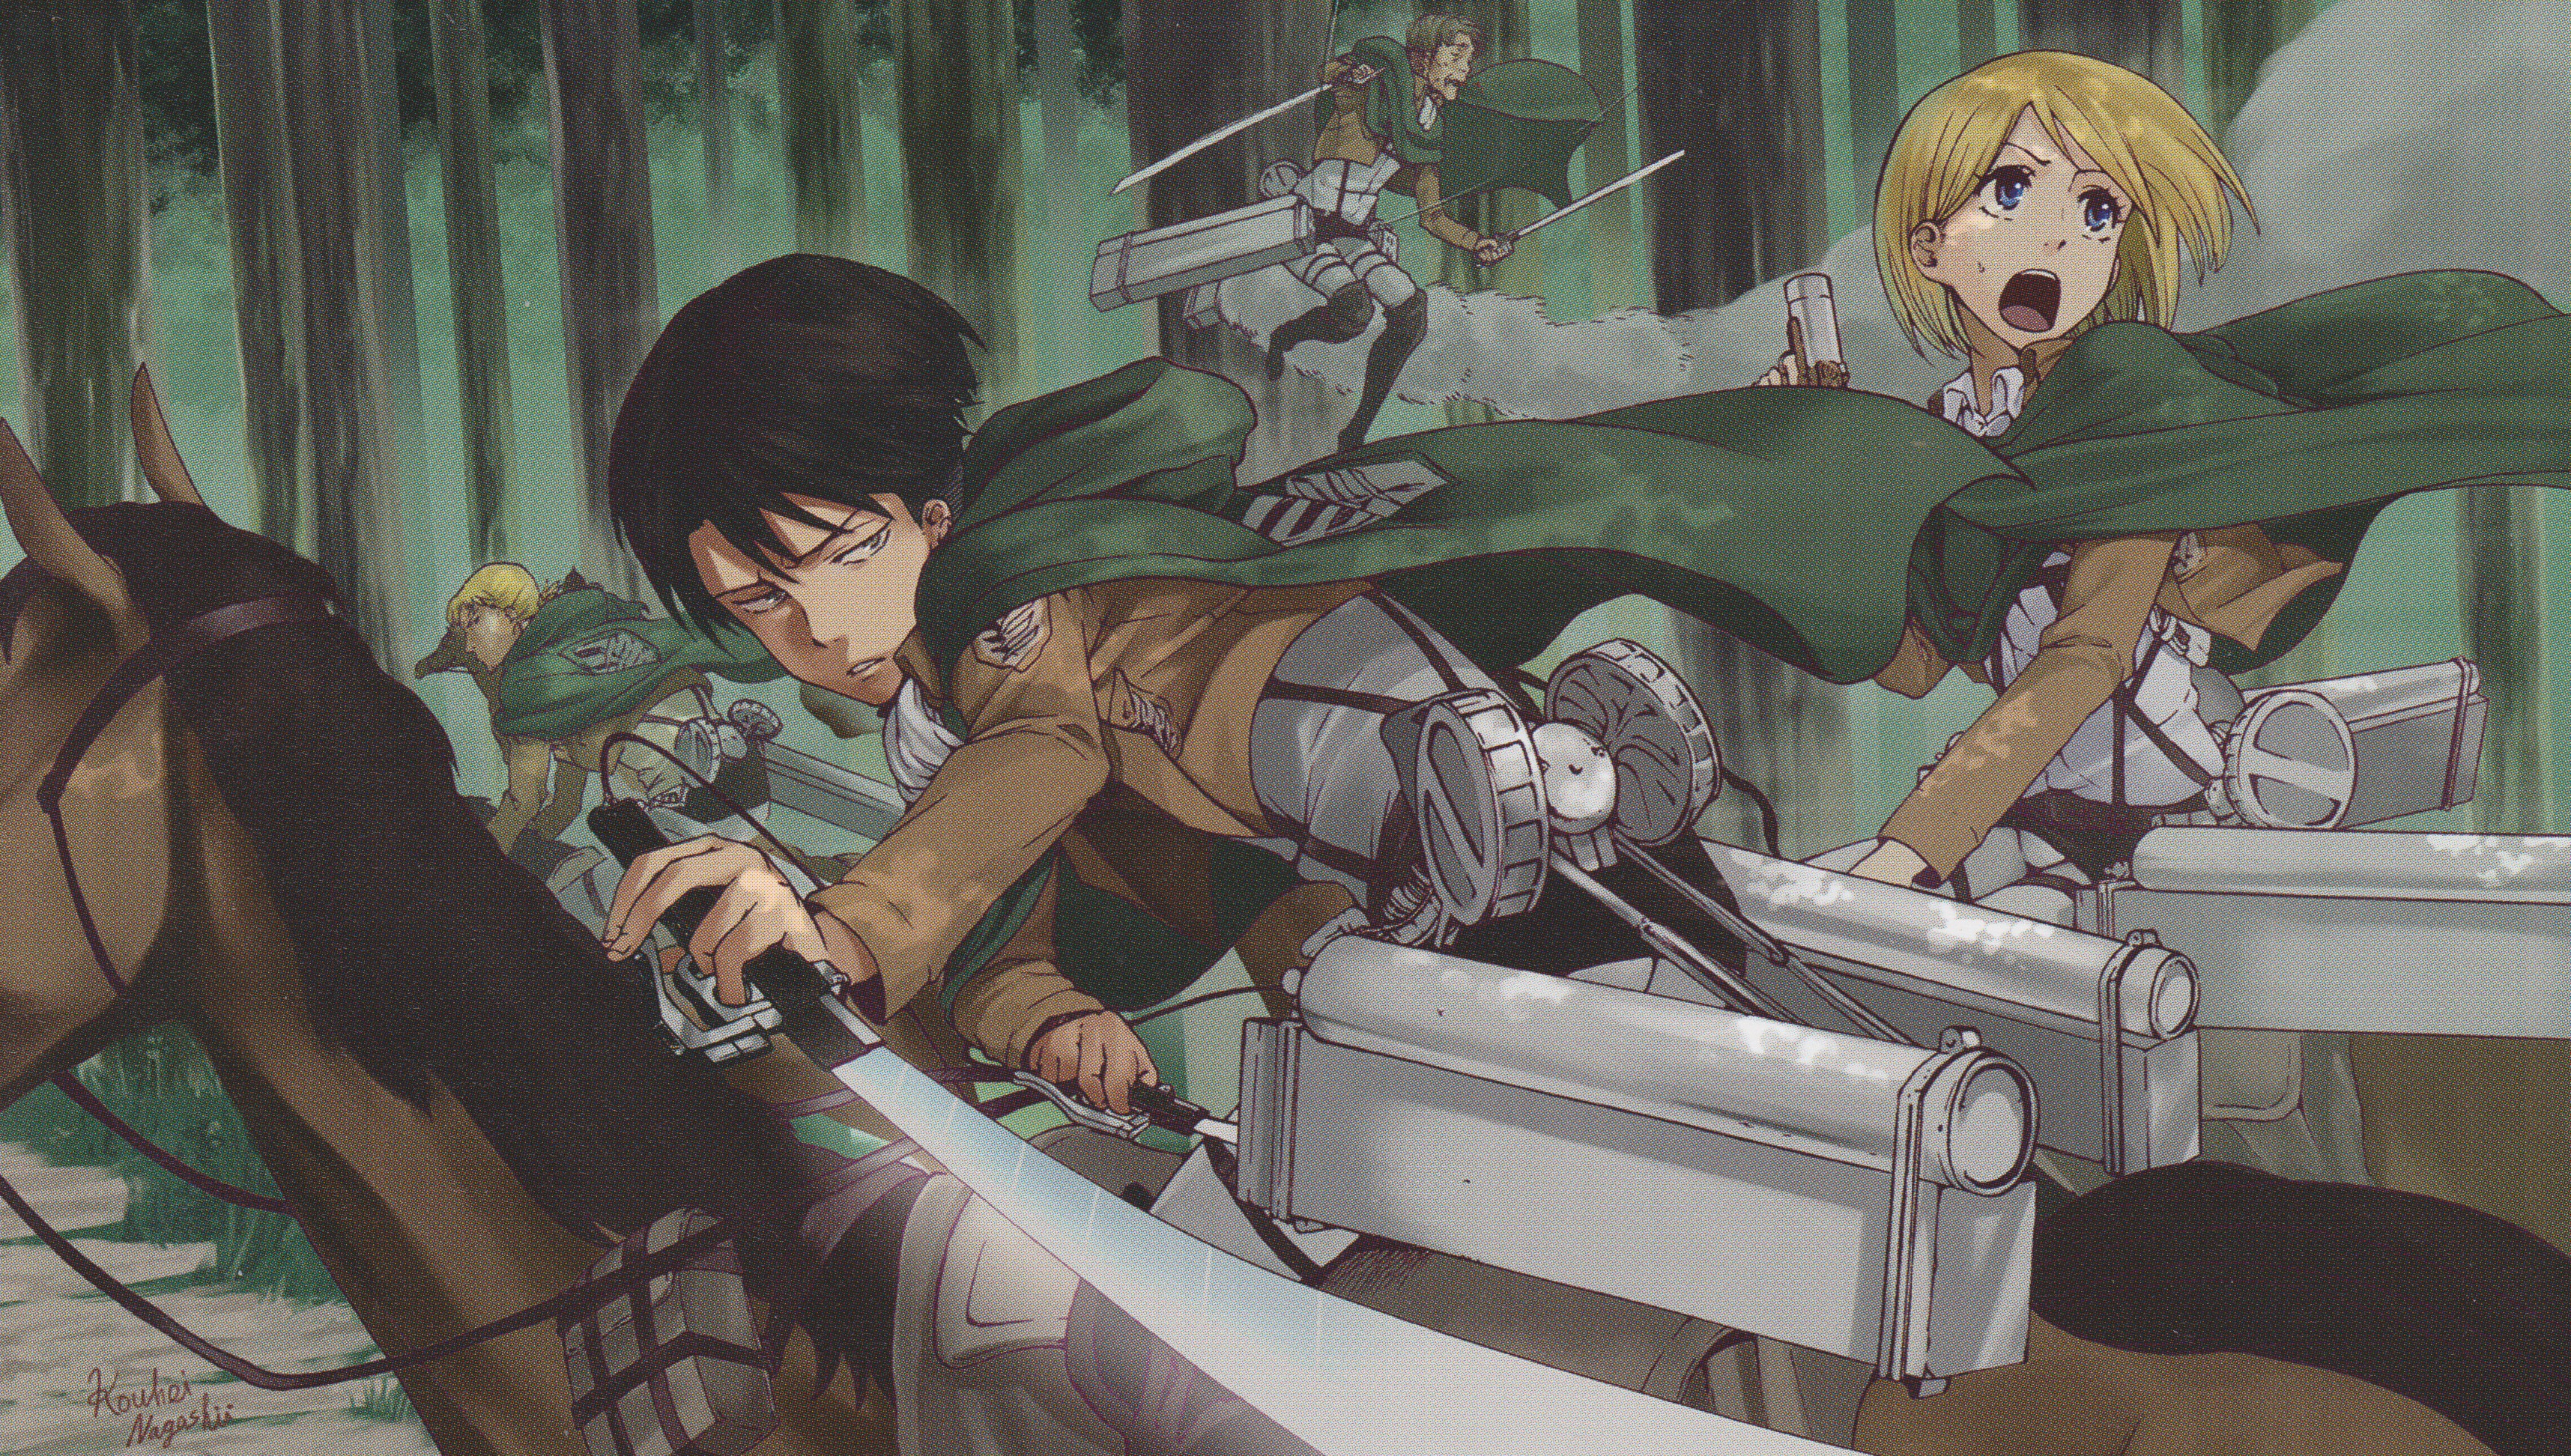 Download Wallpaper From Anime Attack On Titan With Tags Linux Levi Ackerman Petra Ral Auruo Bossard Erd Gin